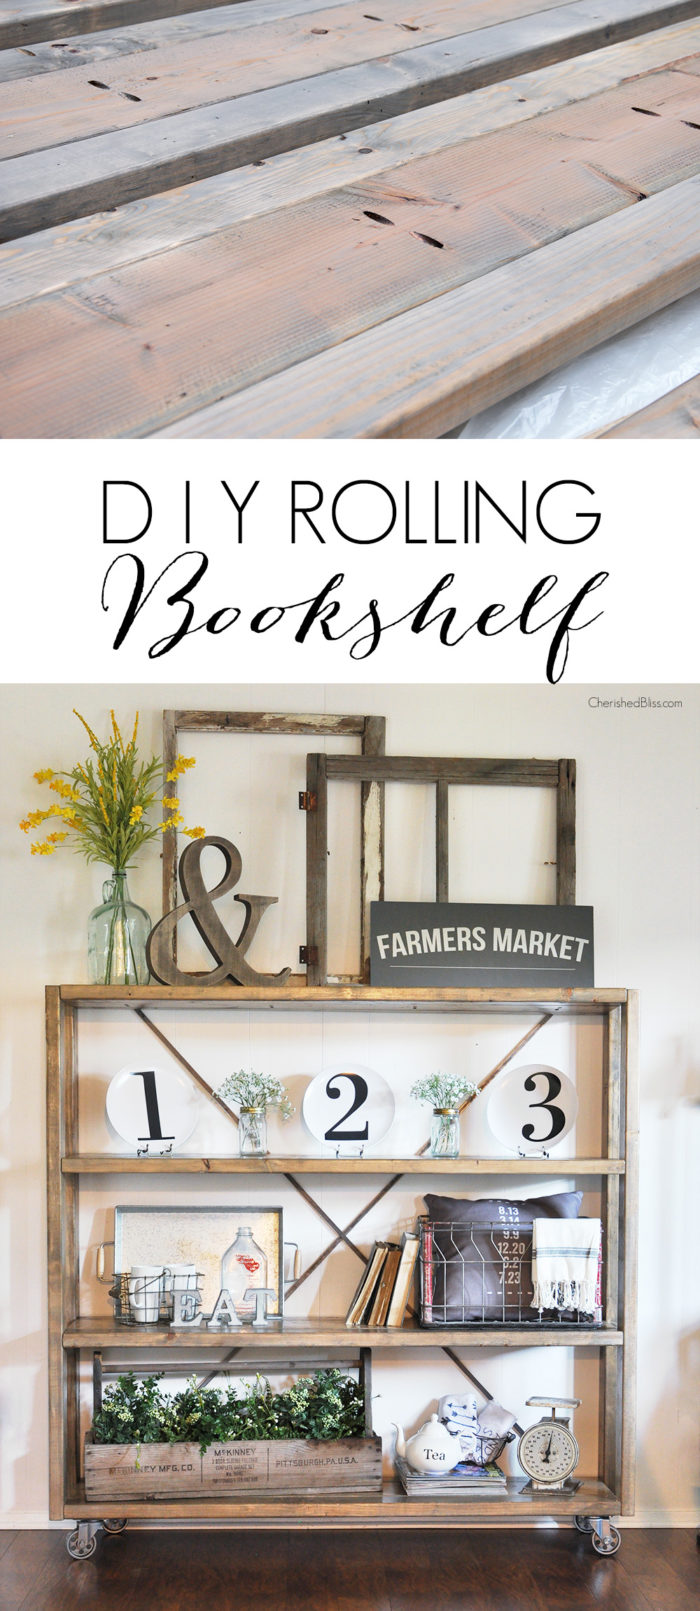 Build this Rolling DIY Bookshelf with easy plans provided by Ana White. Then get the